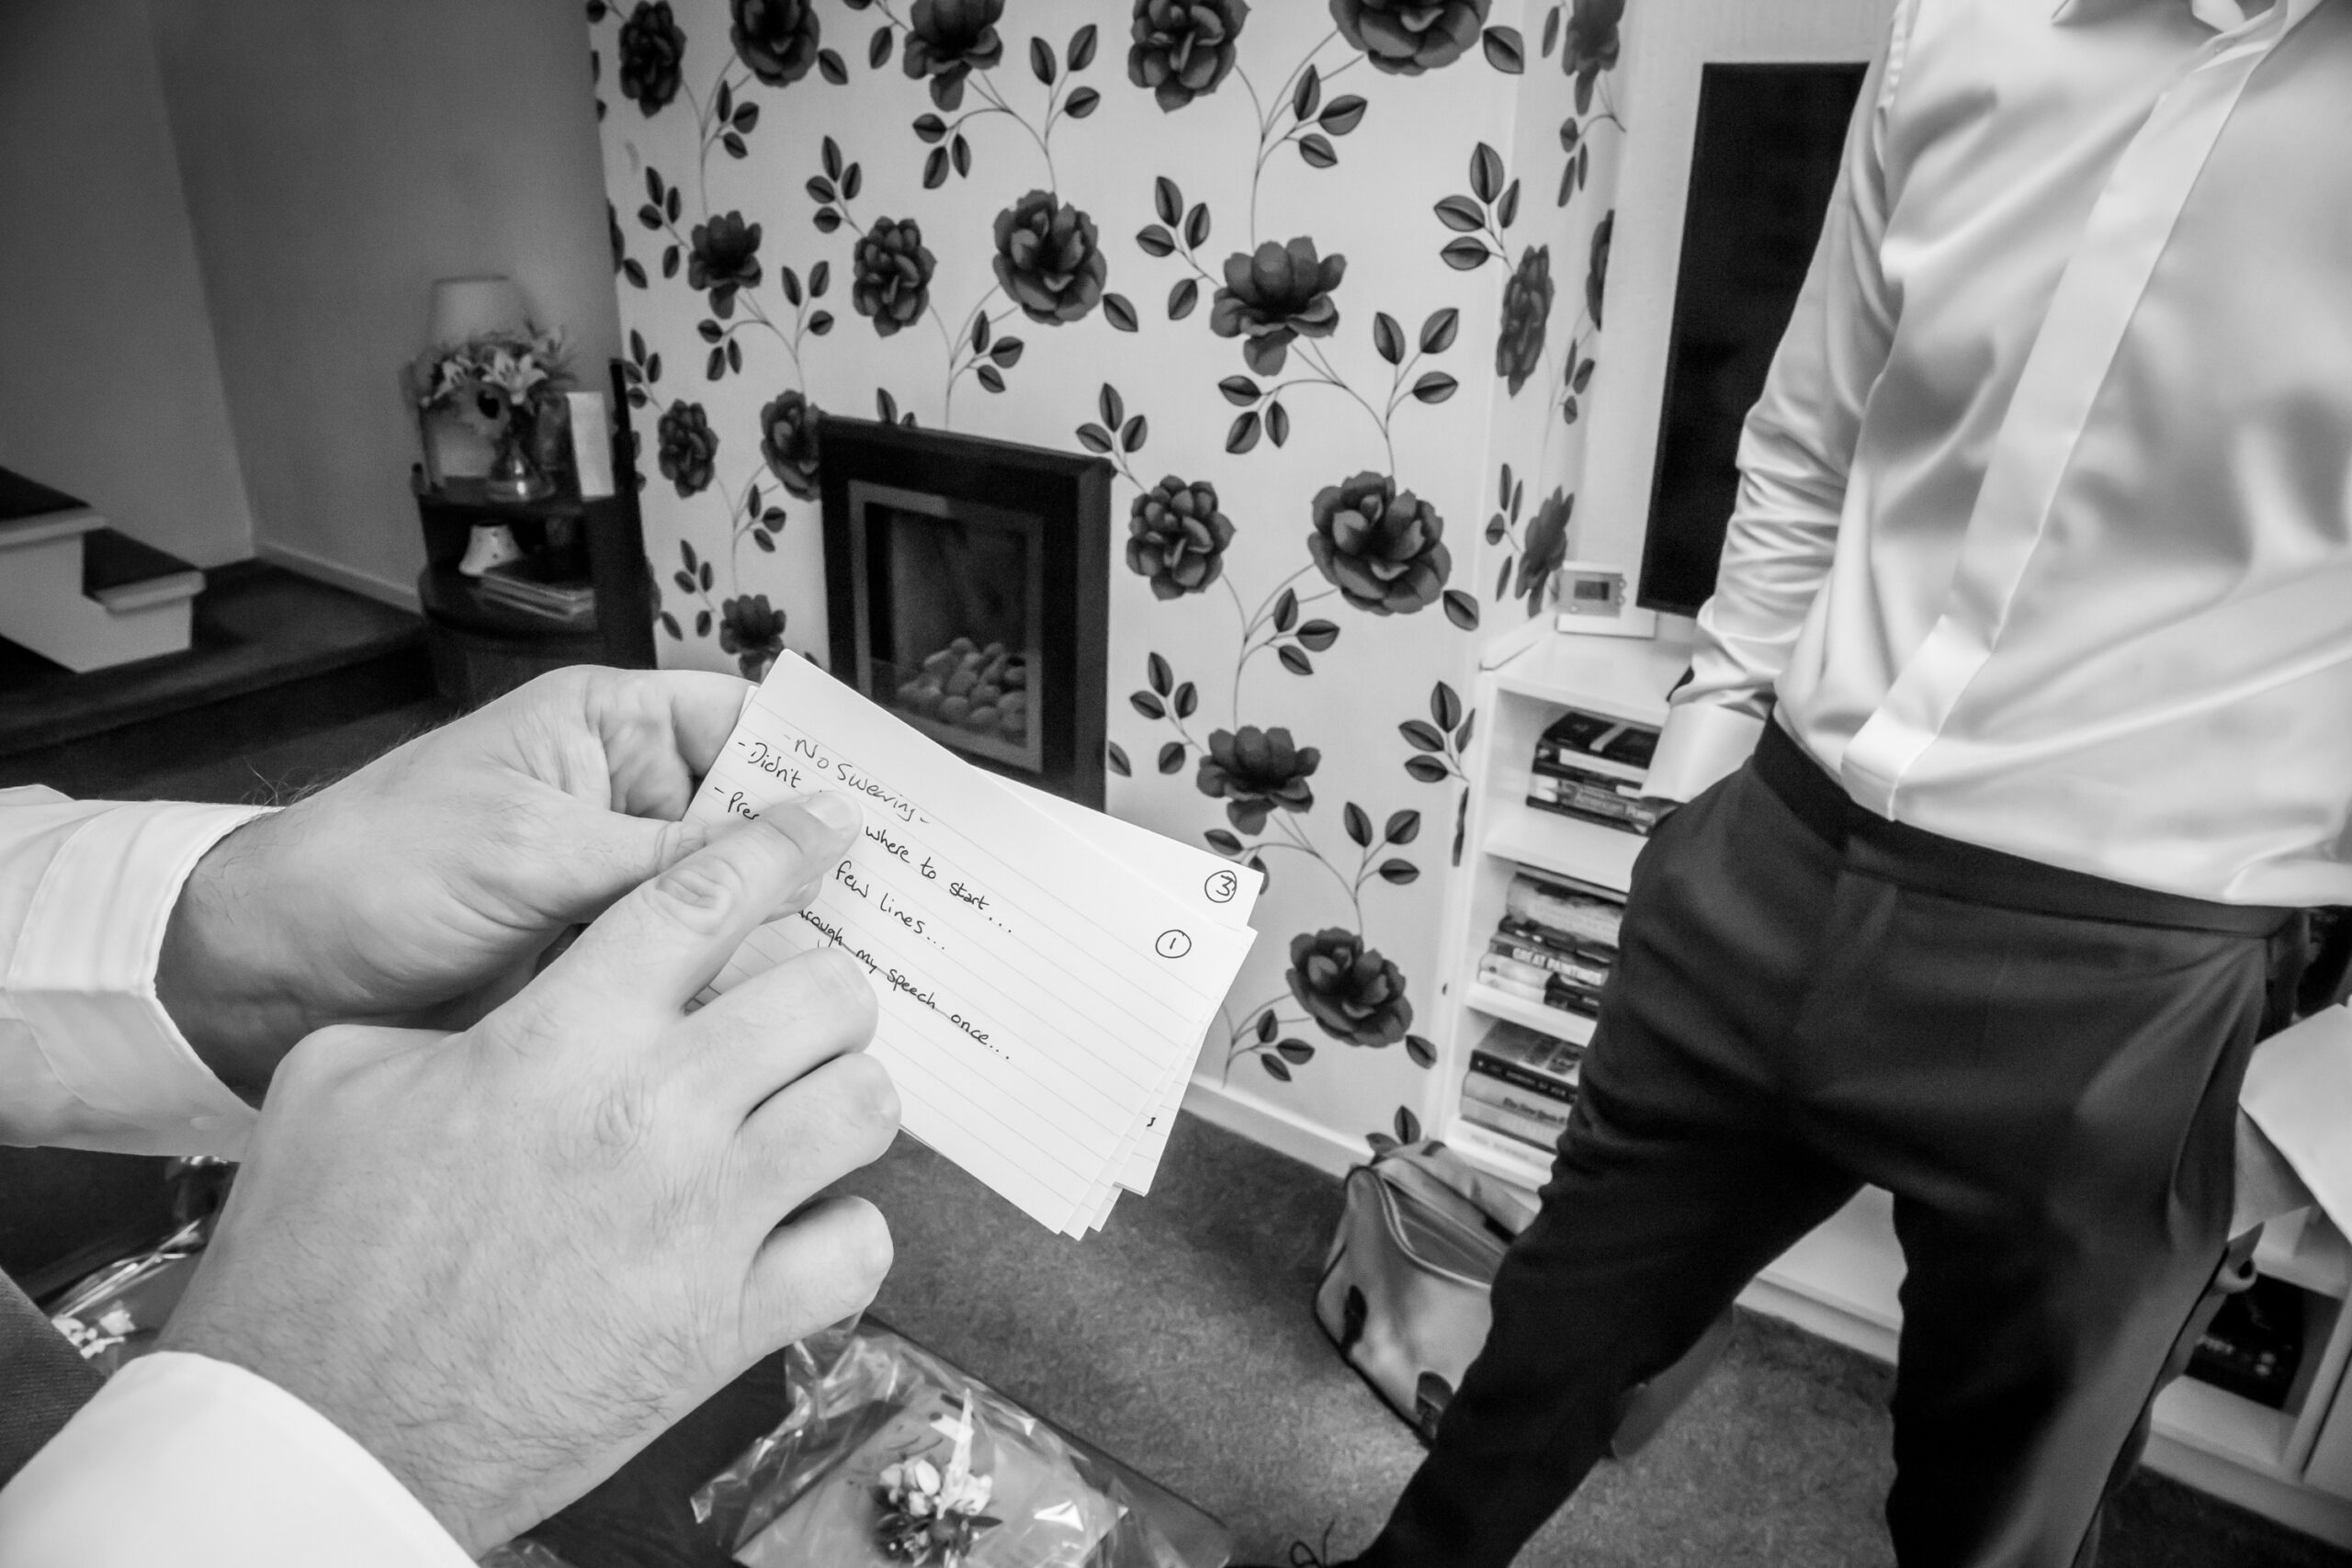 the best man points to the speech cards in front of the groom